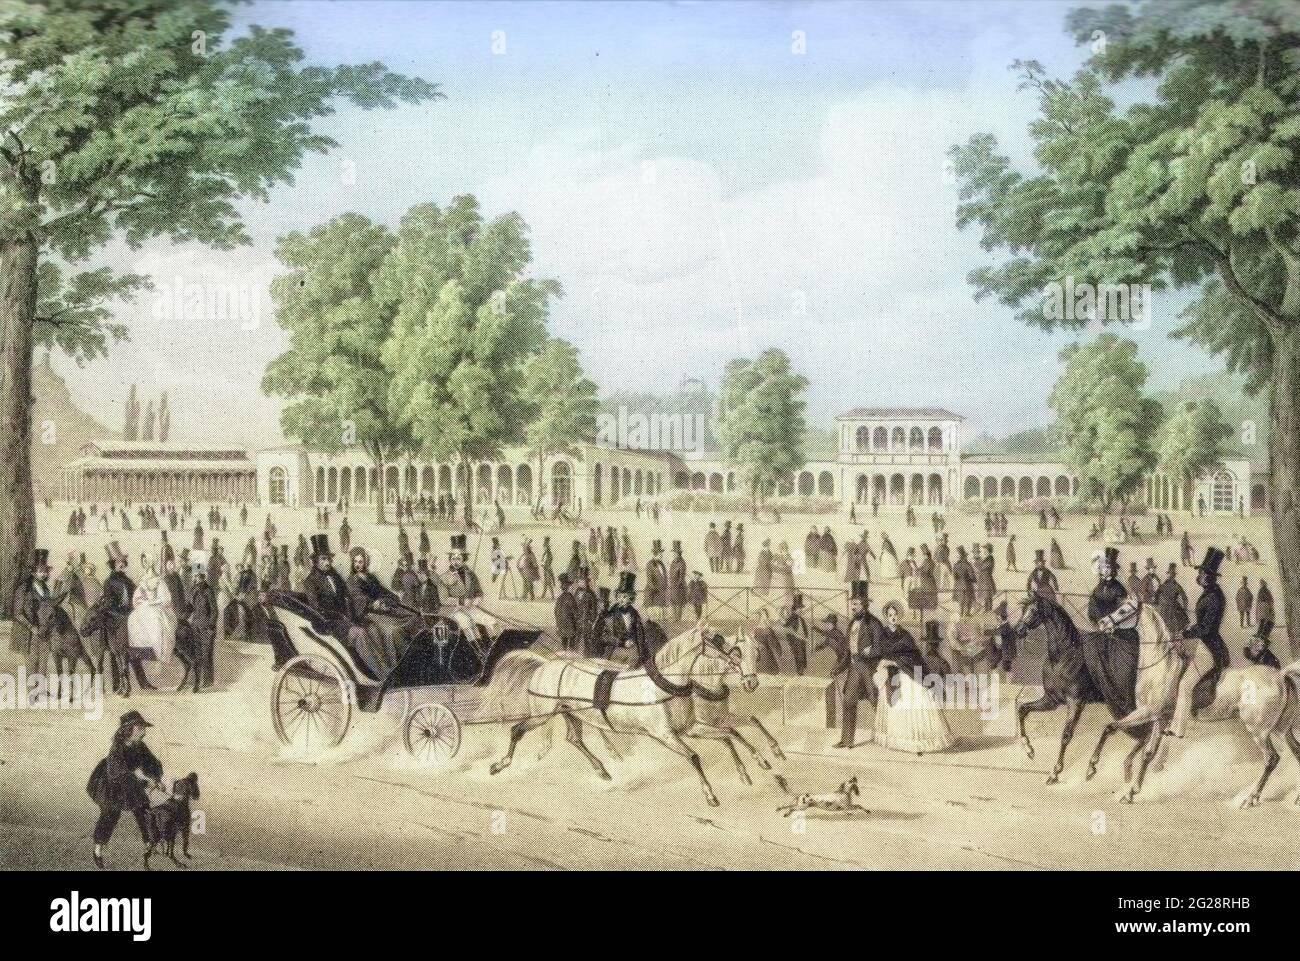 Machine colorized (AI) The Iron Fountain Pavilion and the Arkadenbau in Bad Kissingen, Germany. lithograph by Christian Weiss and H kuber 1850 Stock Photo